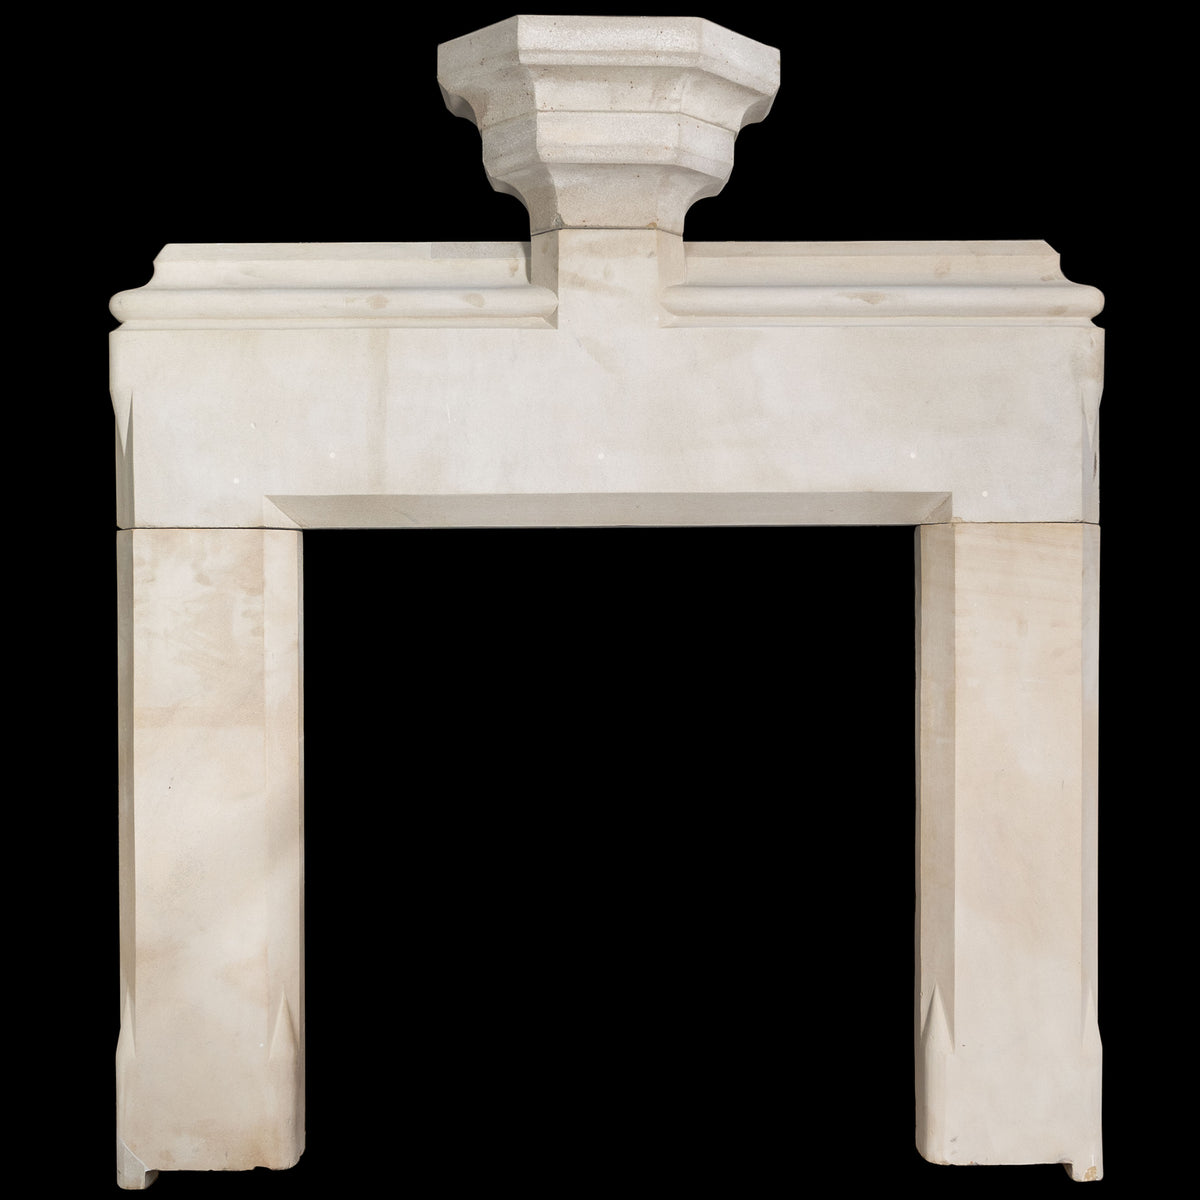 Antique Sandstone Fireplace Surround | The Architectural Forum